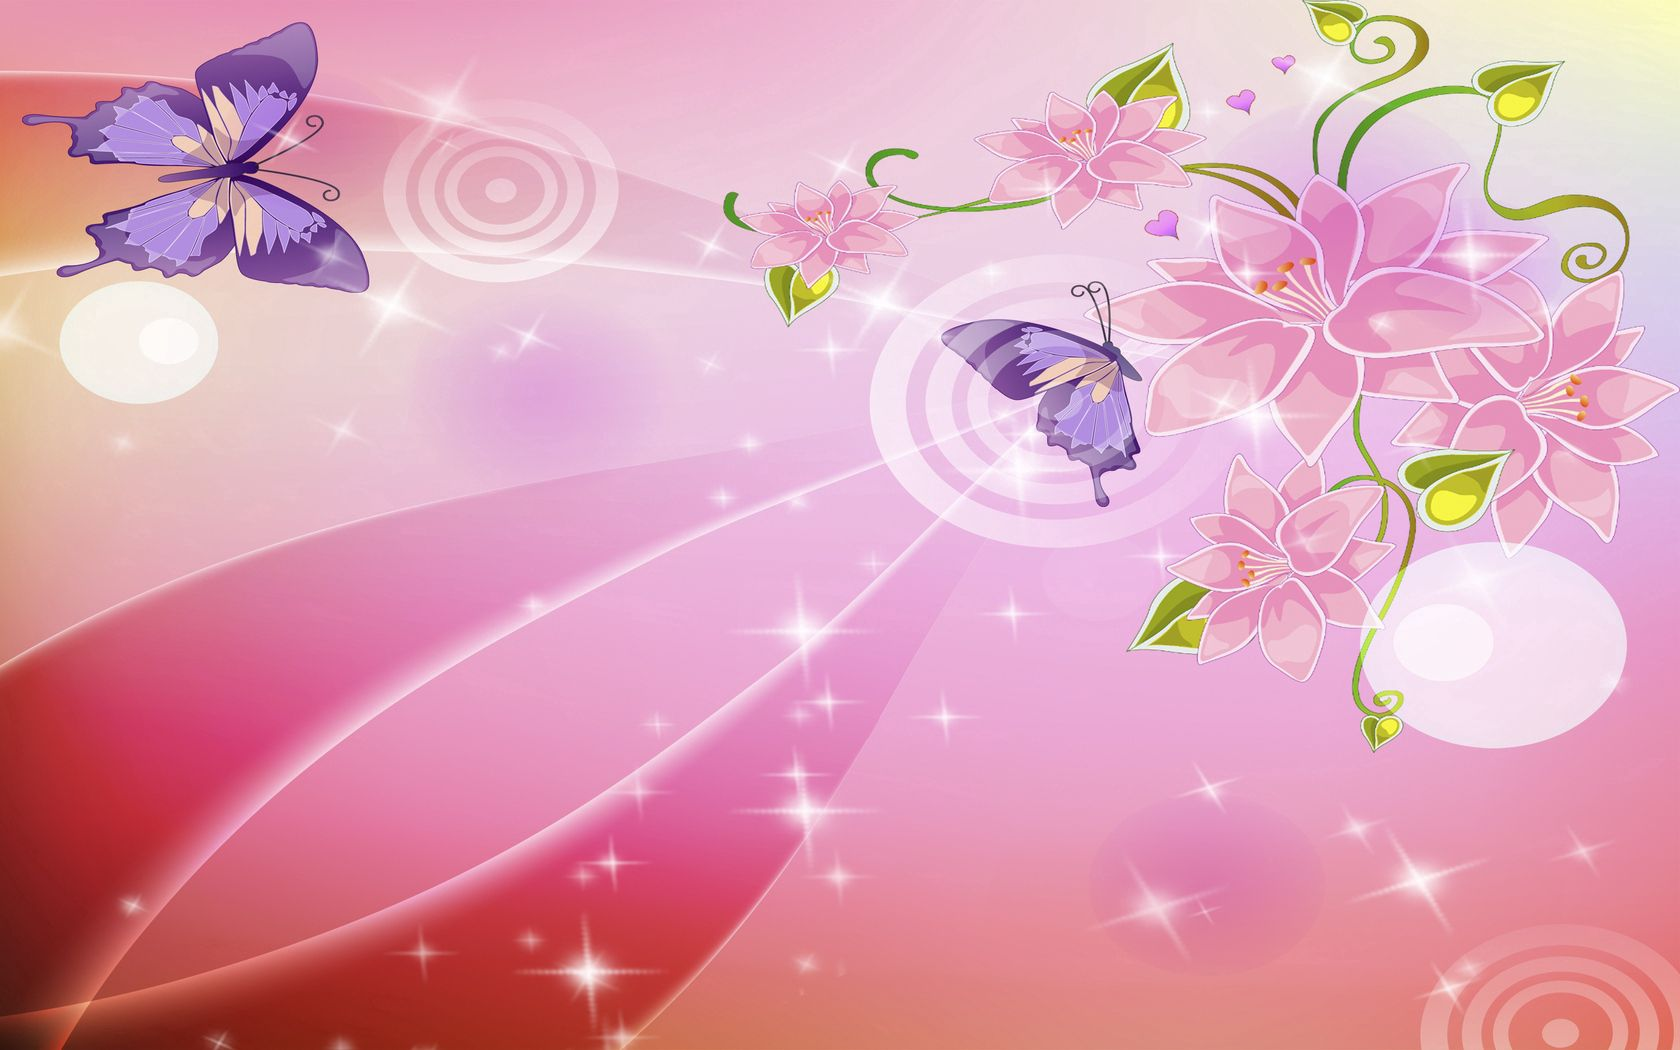 108419 download wallpaper Textures, Texture, Pink, Background, Glare, Butterflies, Flowers screensavers and pictures for free